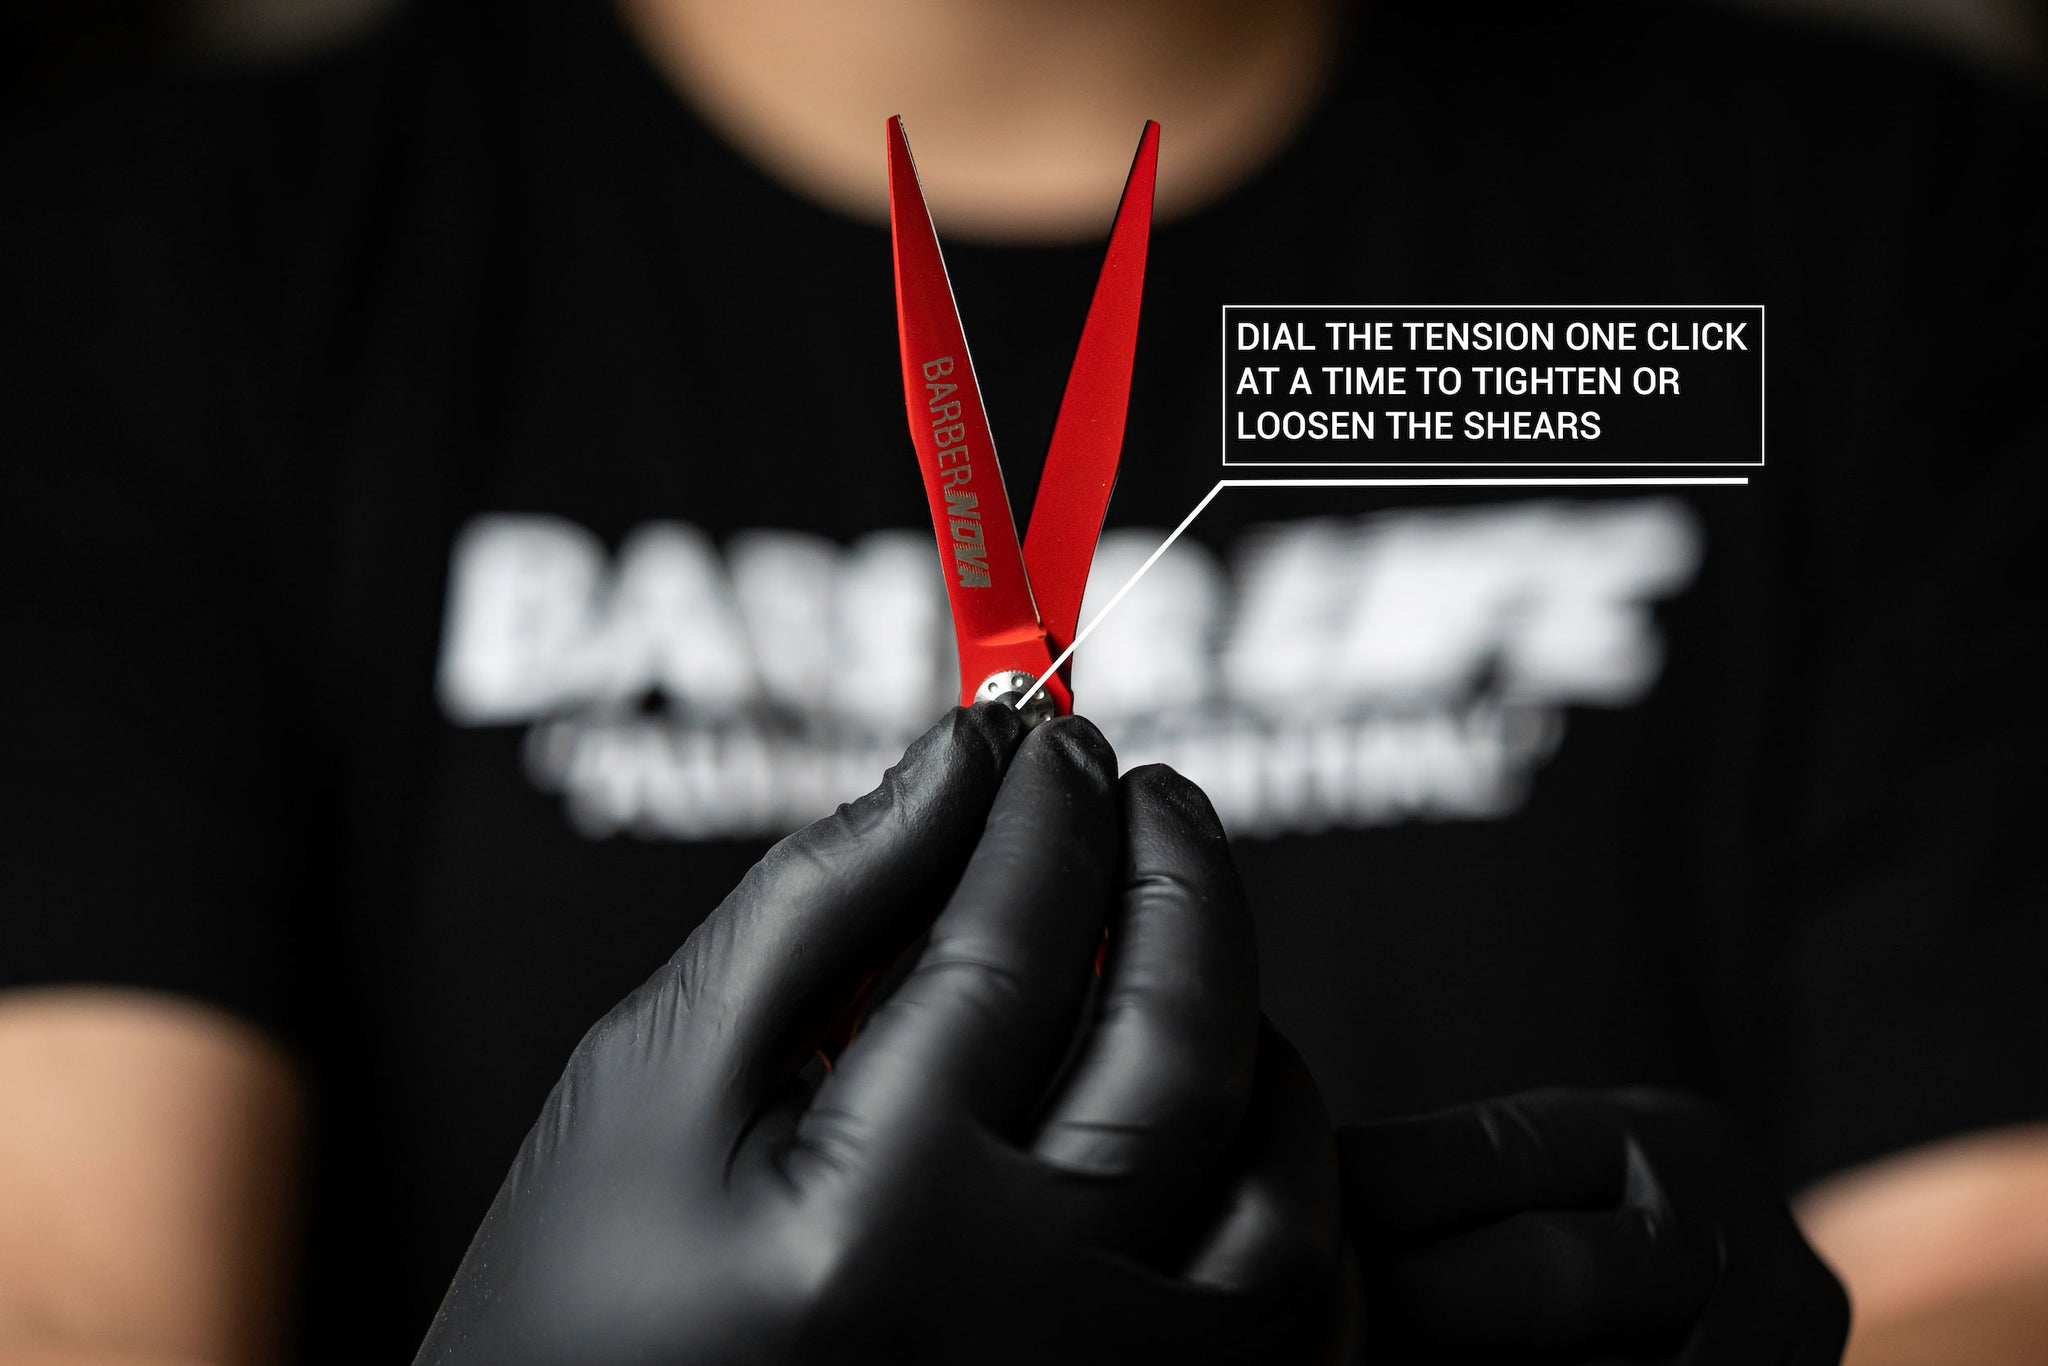 how to get the perfect shear tension, adjust the tension dial, calibrating your shears